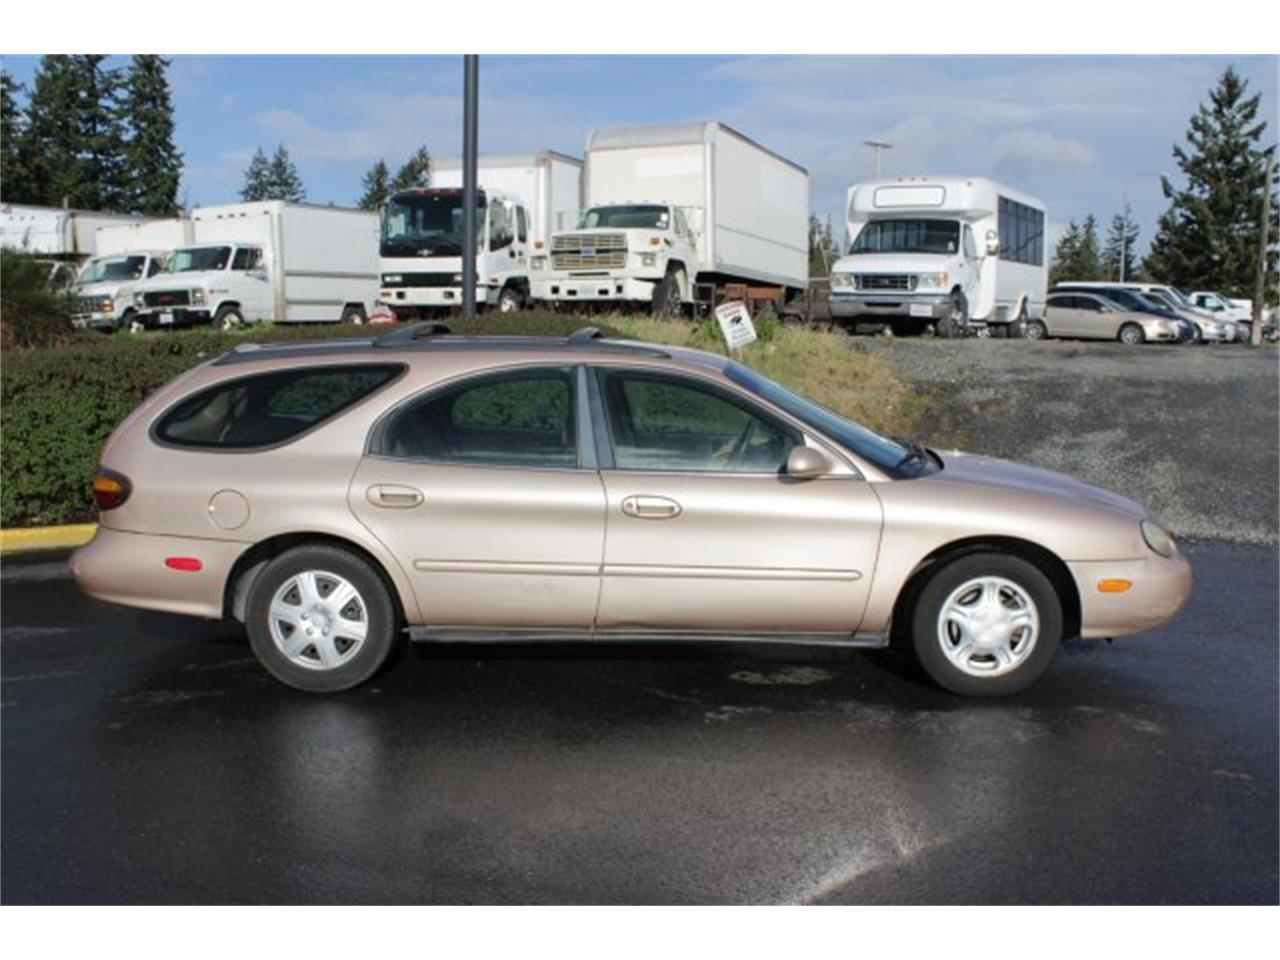 Large Picture of '96 Taurus located in Washington - $2,995.00 Offered by Carson Cars - JJGX